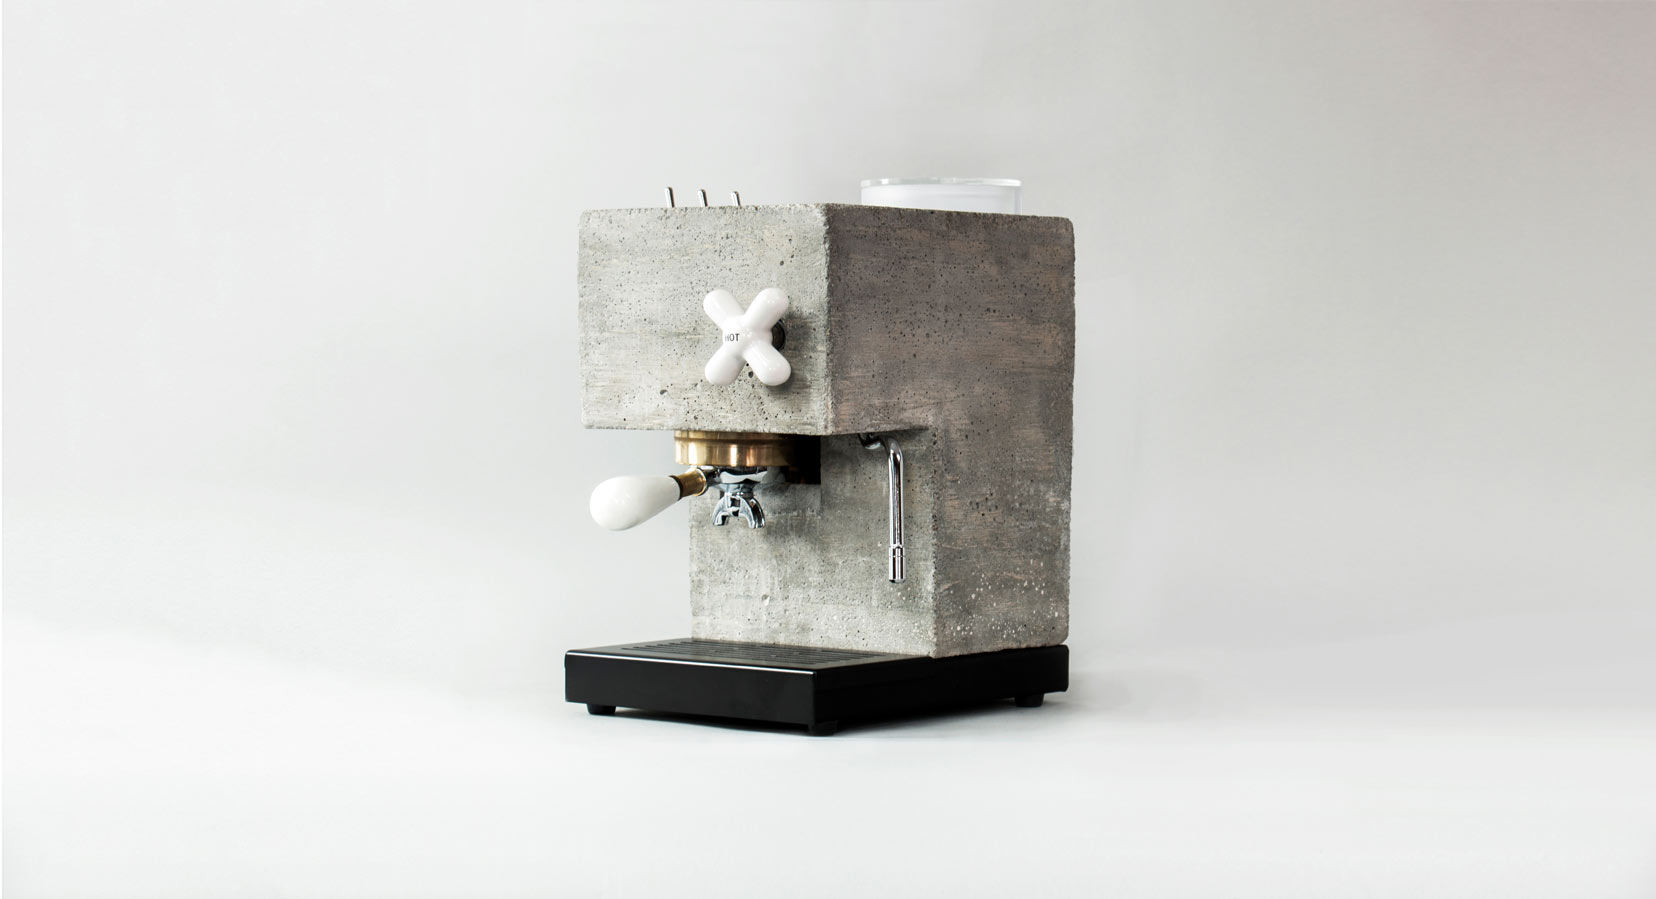 Introducing The Anza Concrete Espresso Machine